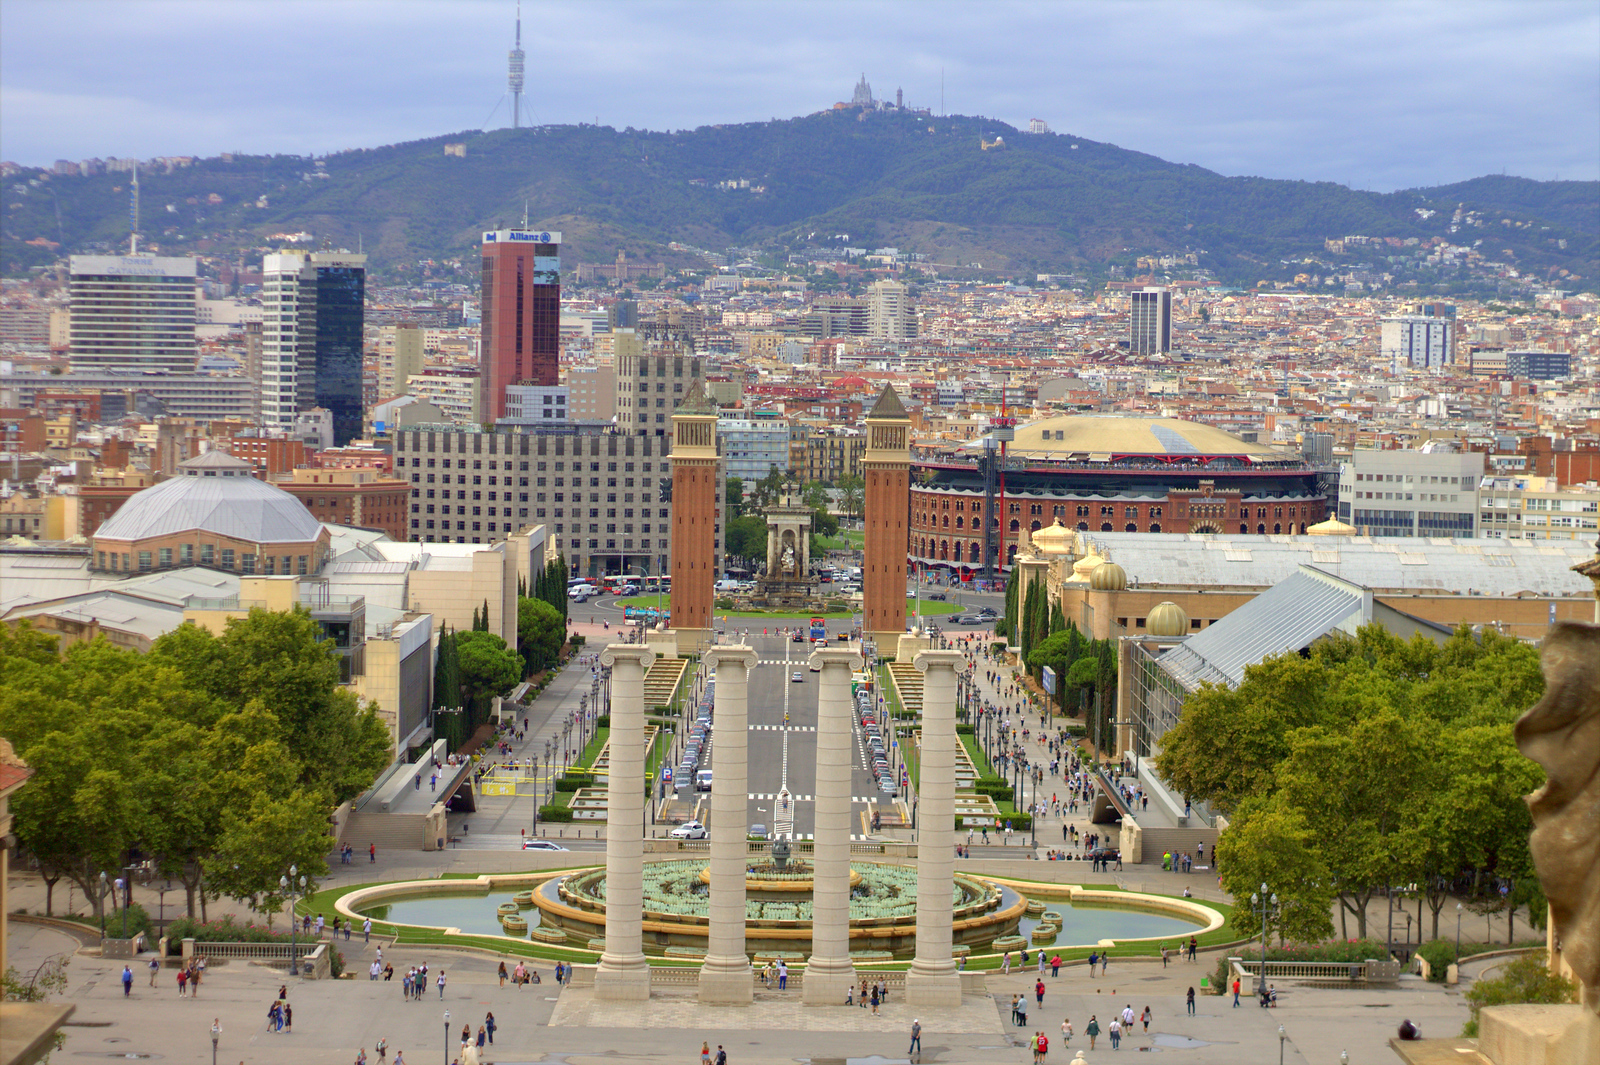 3 Days in Barcelona - Panoramic Views